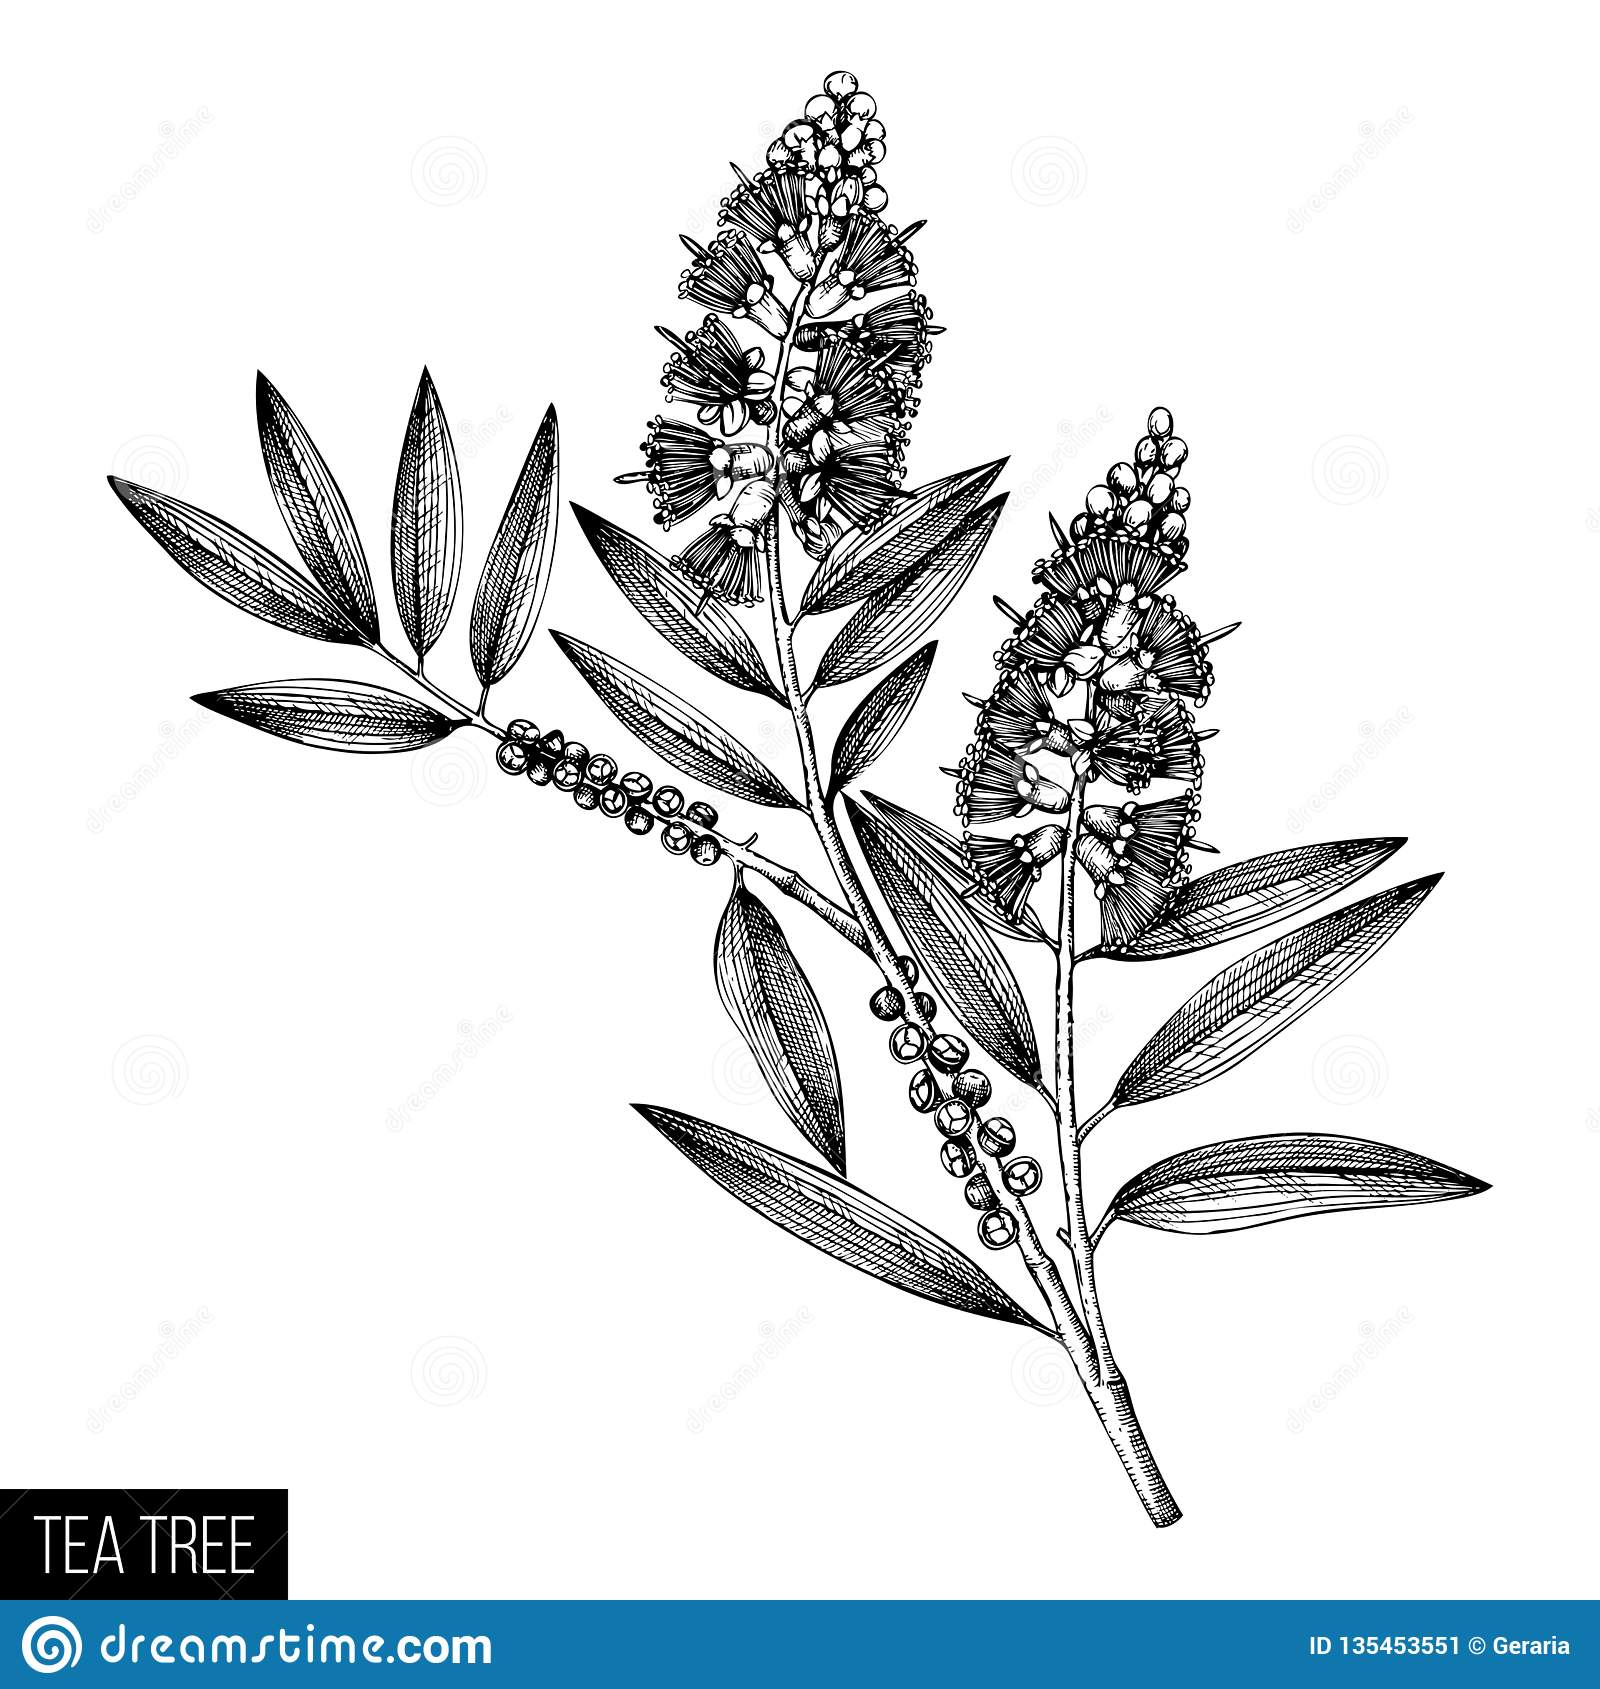 Hand drawn tea tree tea olive sketches on white background. Cosmetics and medical myrtle plant. Vector cajeput tree botanical dr